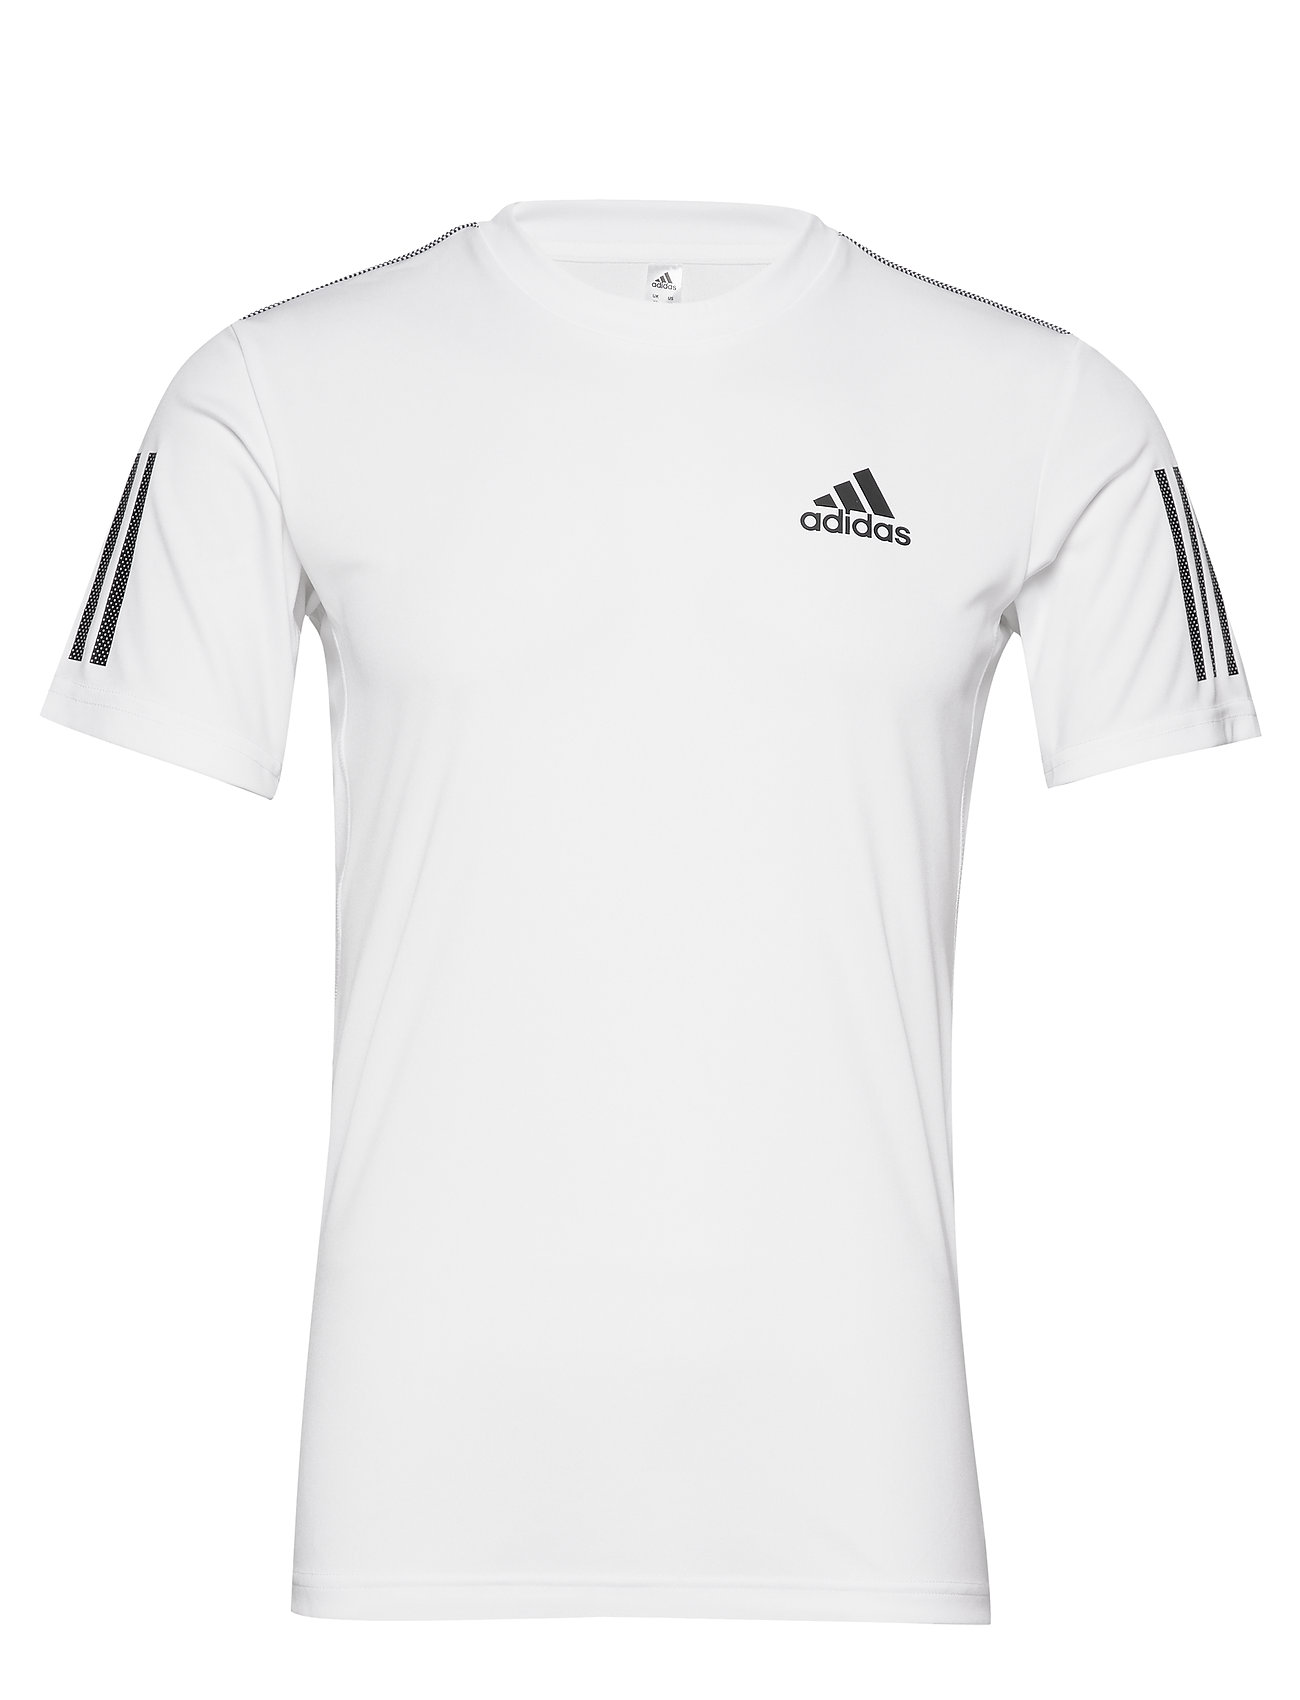 adidas Tennis CLUB 3 STRIPES TEE M - WHITE